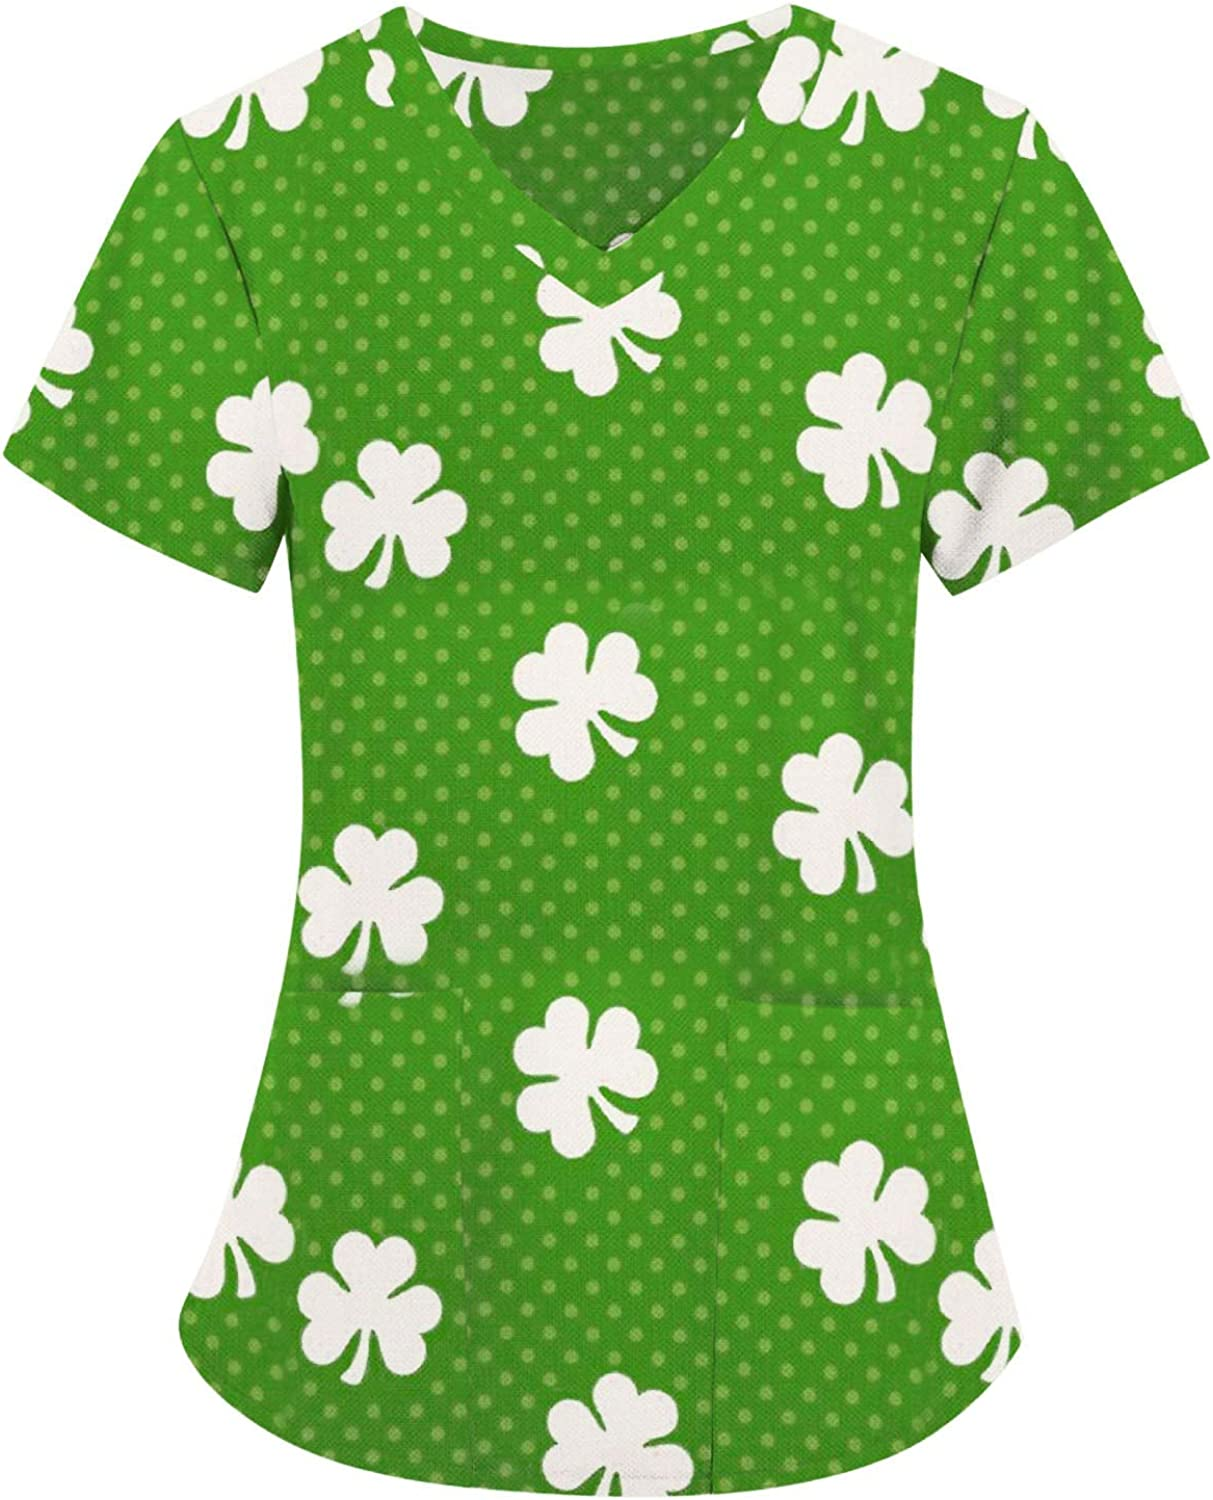 2021 New Women's Short Sleeve V-Neck Shirts Loose Casual Tee T-Shirt Basic Tops ST Saint Patricks Day Pullover for Friends Gifts